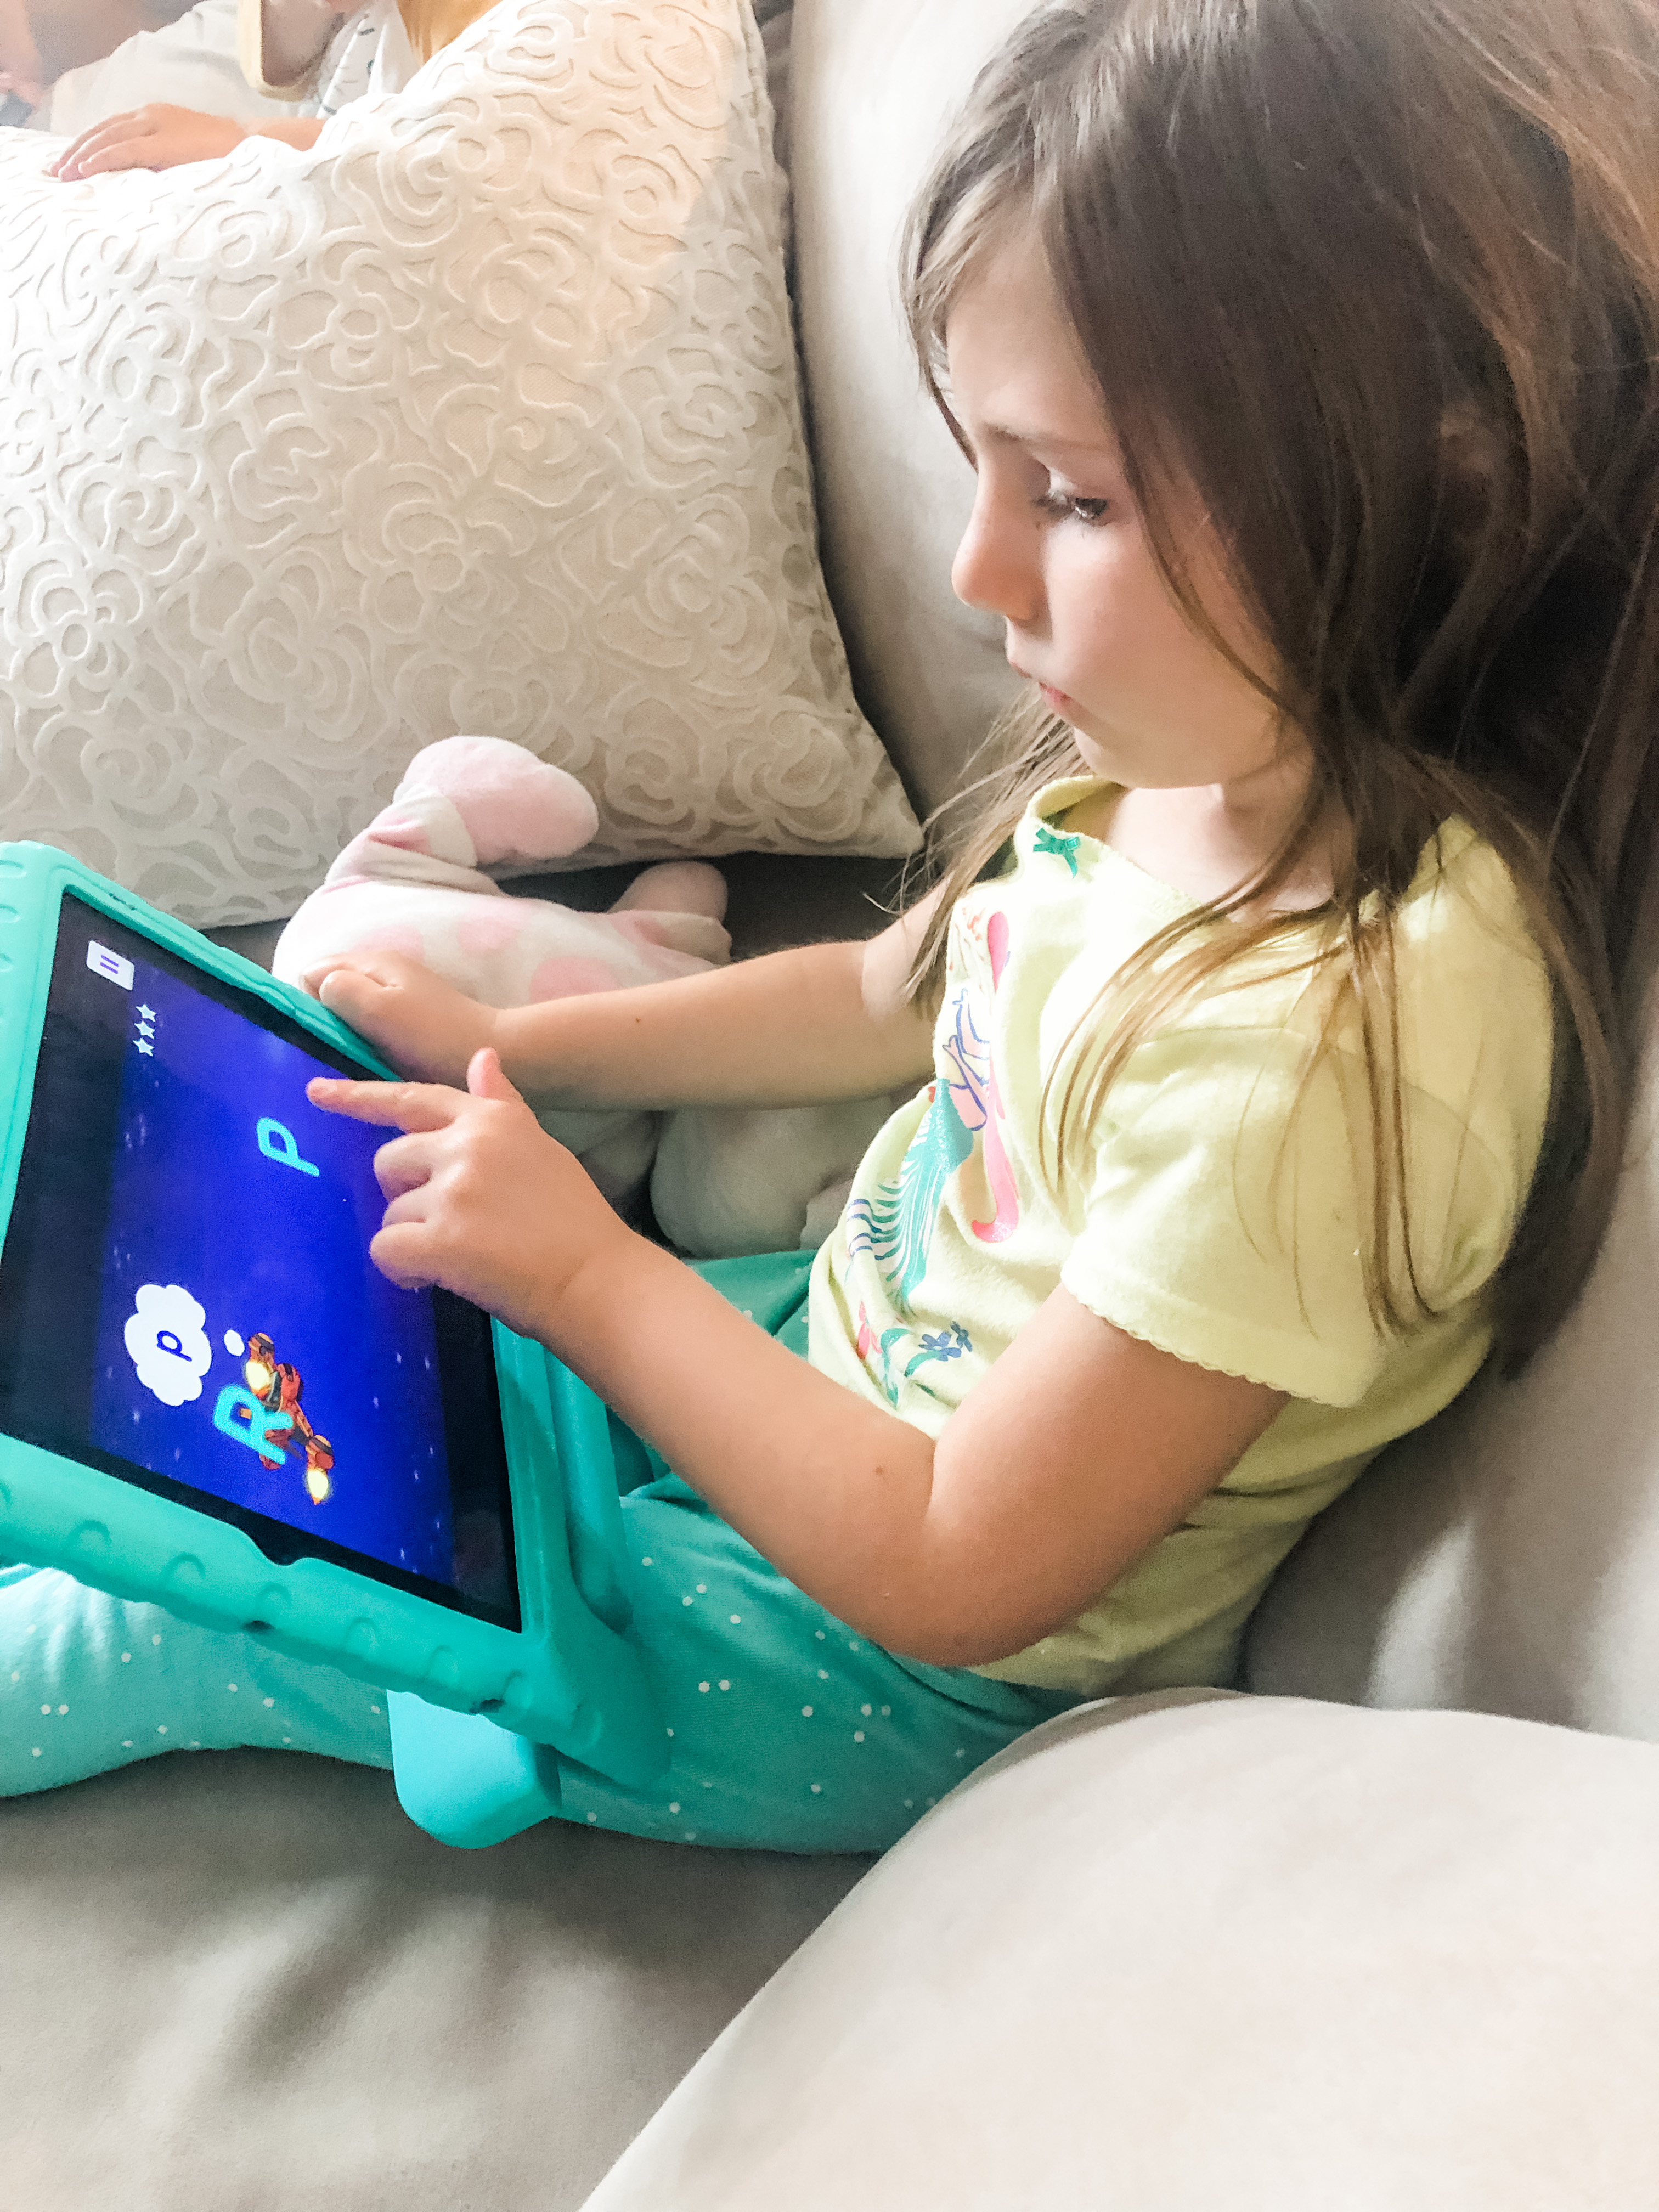 The Noggin learning app is perfect as a fun game while learning new concepts and practicing skills in preparation for pre-k and kindergarten!